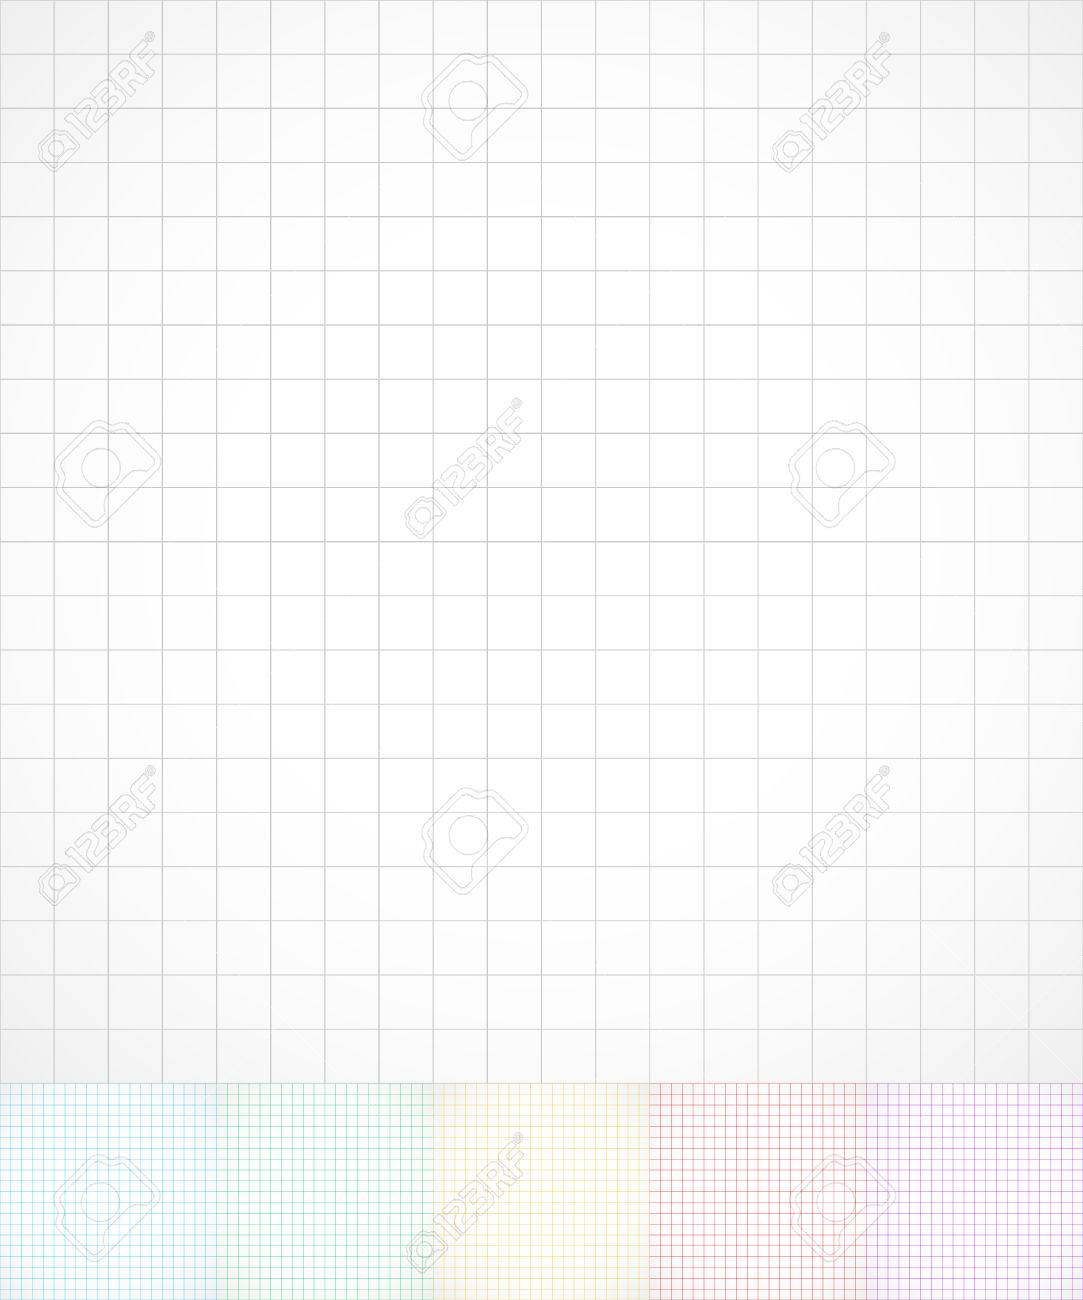 gridded wire frame paper graph paper background in 6 color